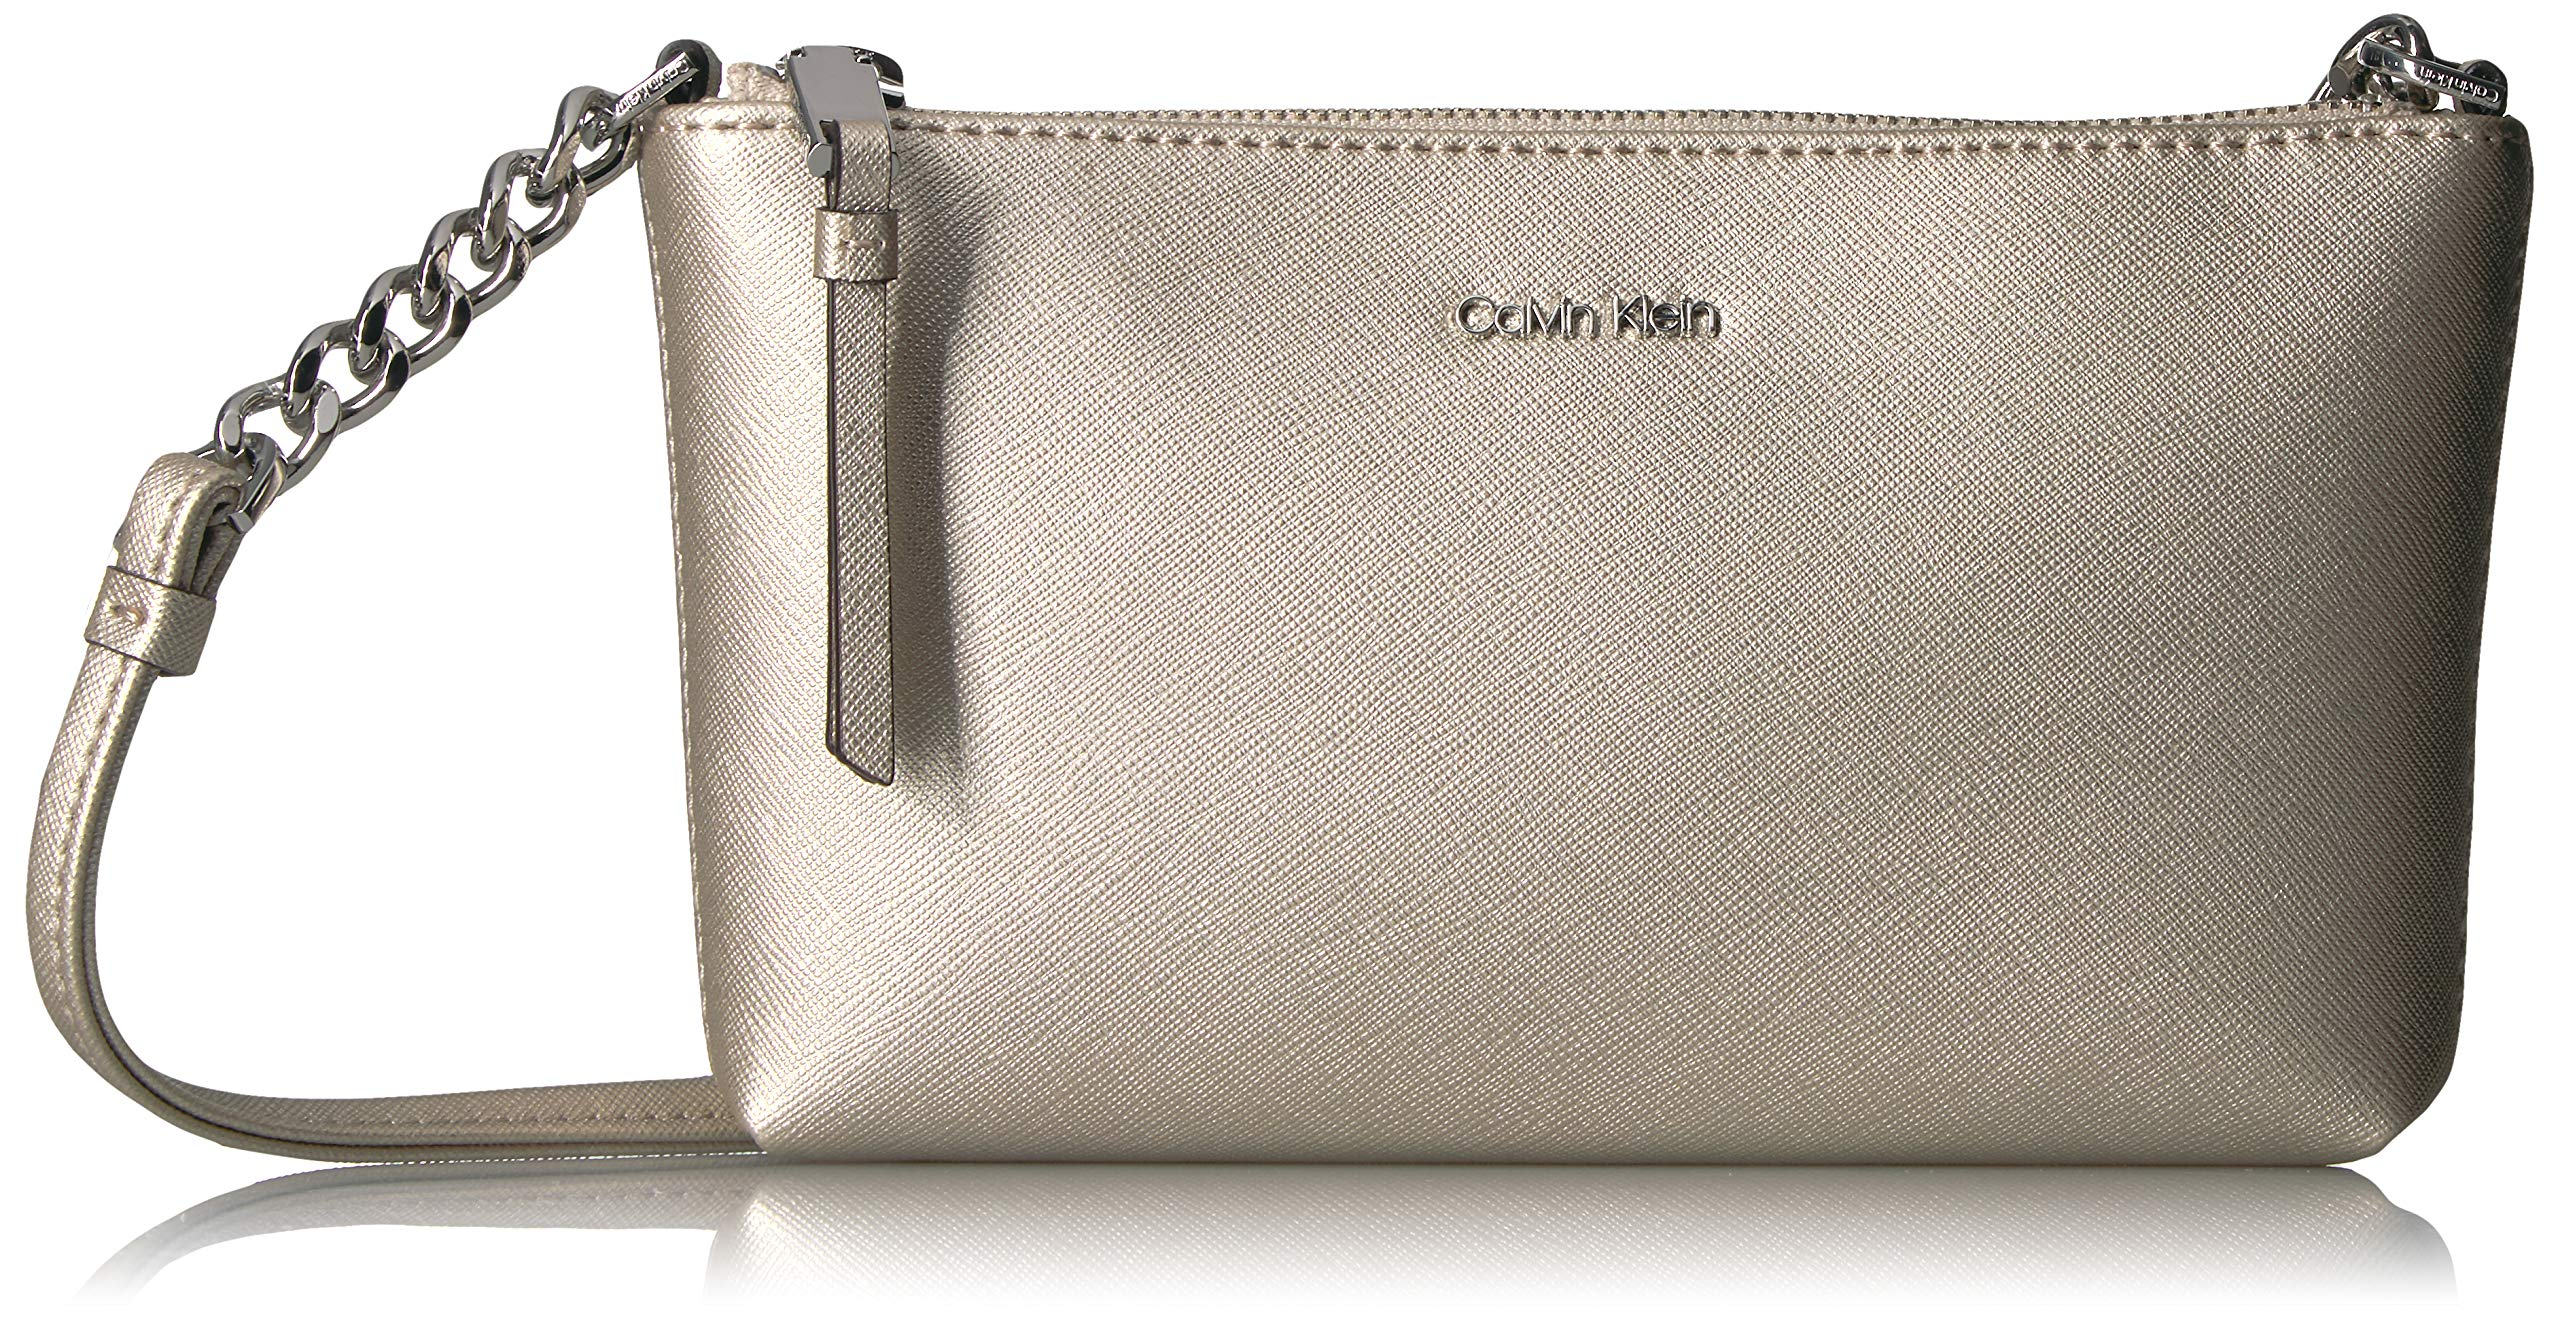 6ca04069cfe Calvin Klein Saffiano Leather Key Item Demi Shoulder Bag with Charm ...